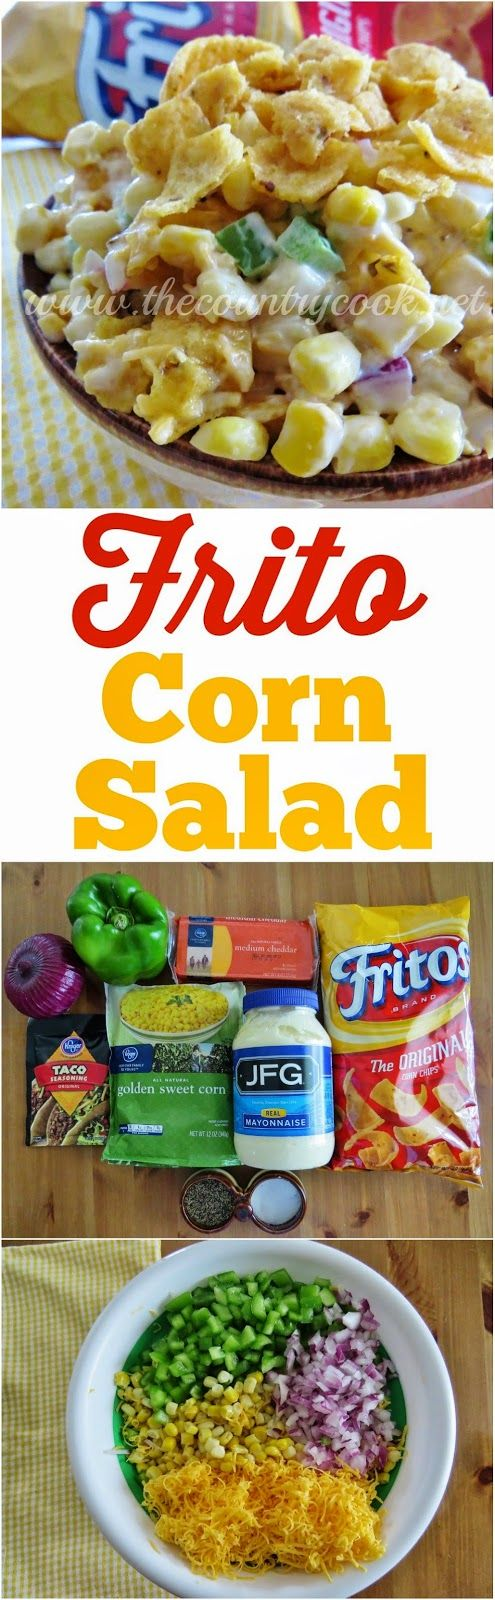 Frito Corn Salad recipe from The Country Cook. The best side dish recipe for any cookout or BBQ. It's a must-have! Perfect for Memorial Day, Labor Day and Fourth of July!